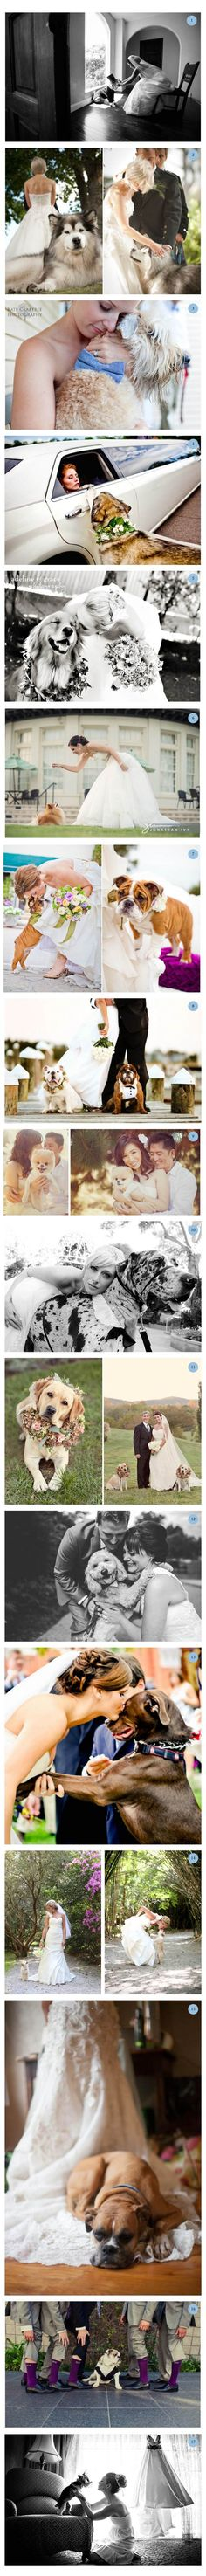 Having your puppies on your wedding day! I wish I could do this with my baby girl, but at least she's in a better place.